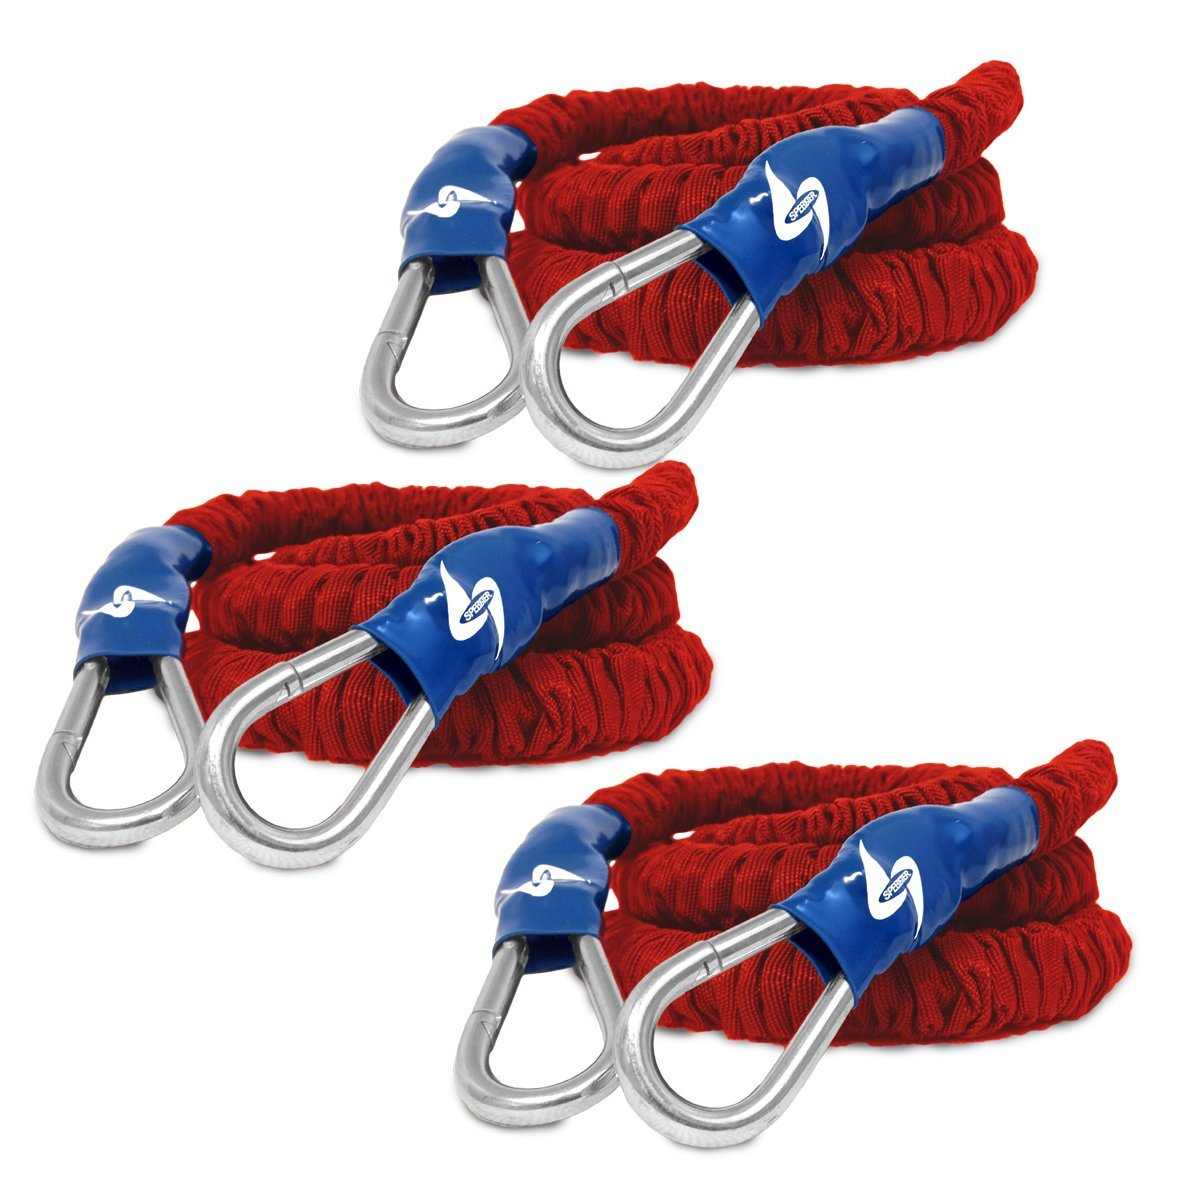 Speedster Lightning Cord 3pk, Medium - 20' 8' 4' Bungee Bands for Speed Training by SPEEDSTER